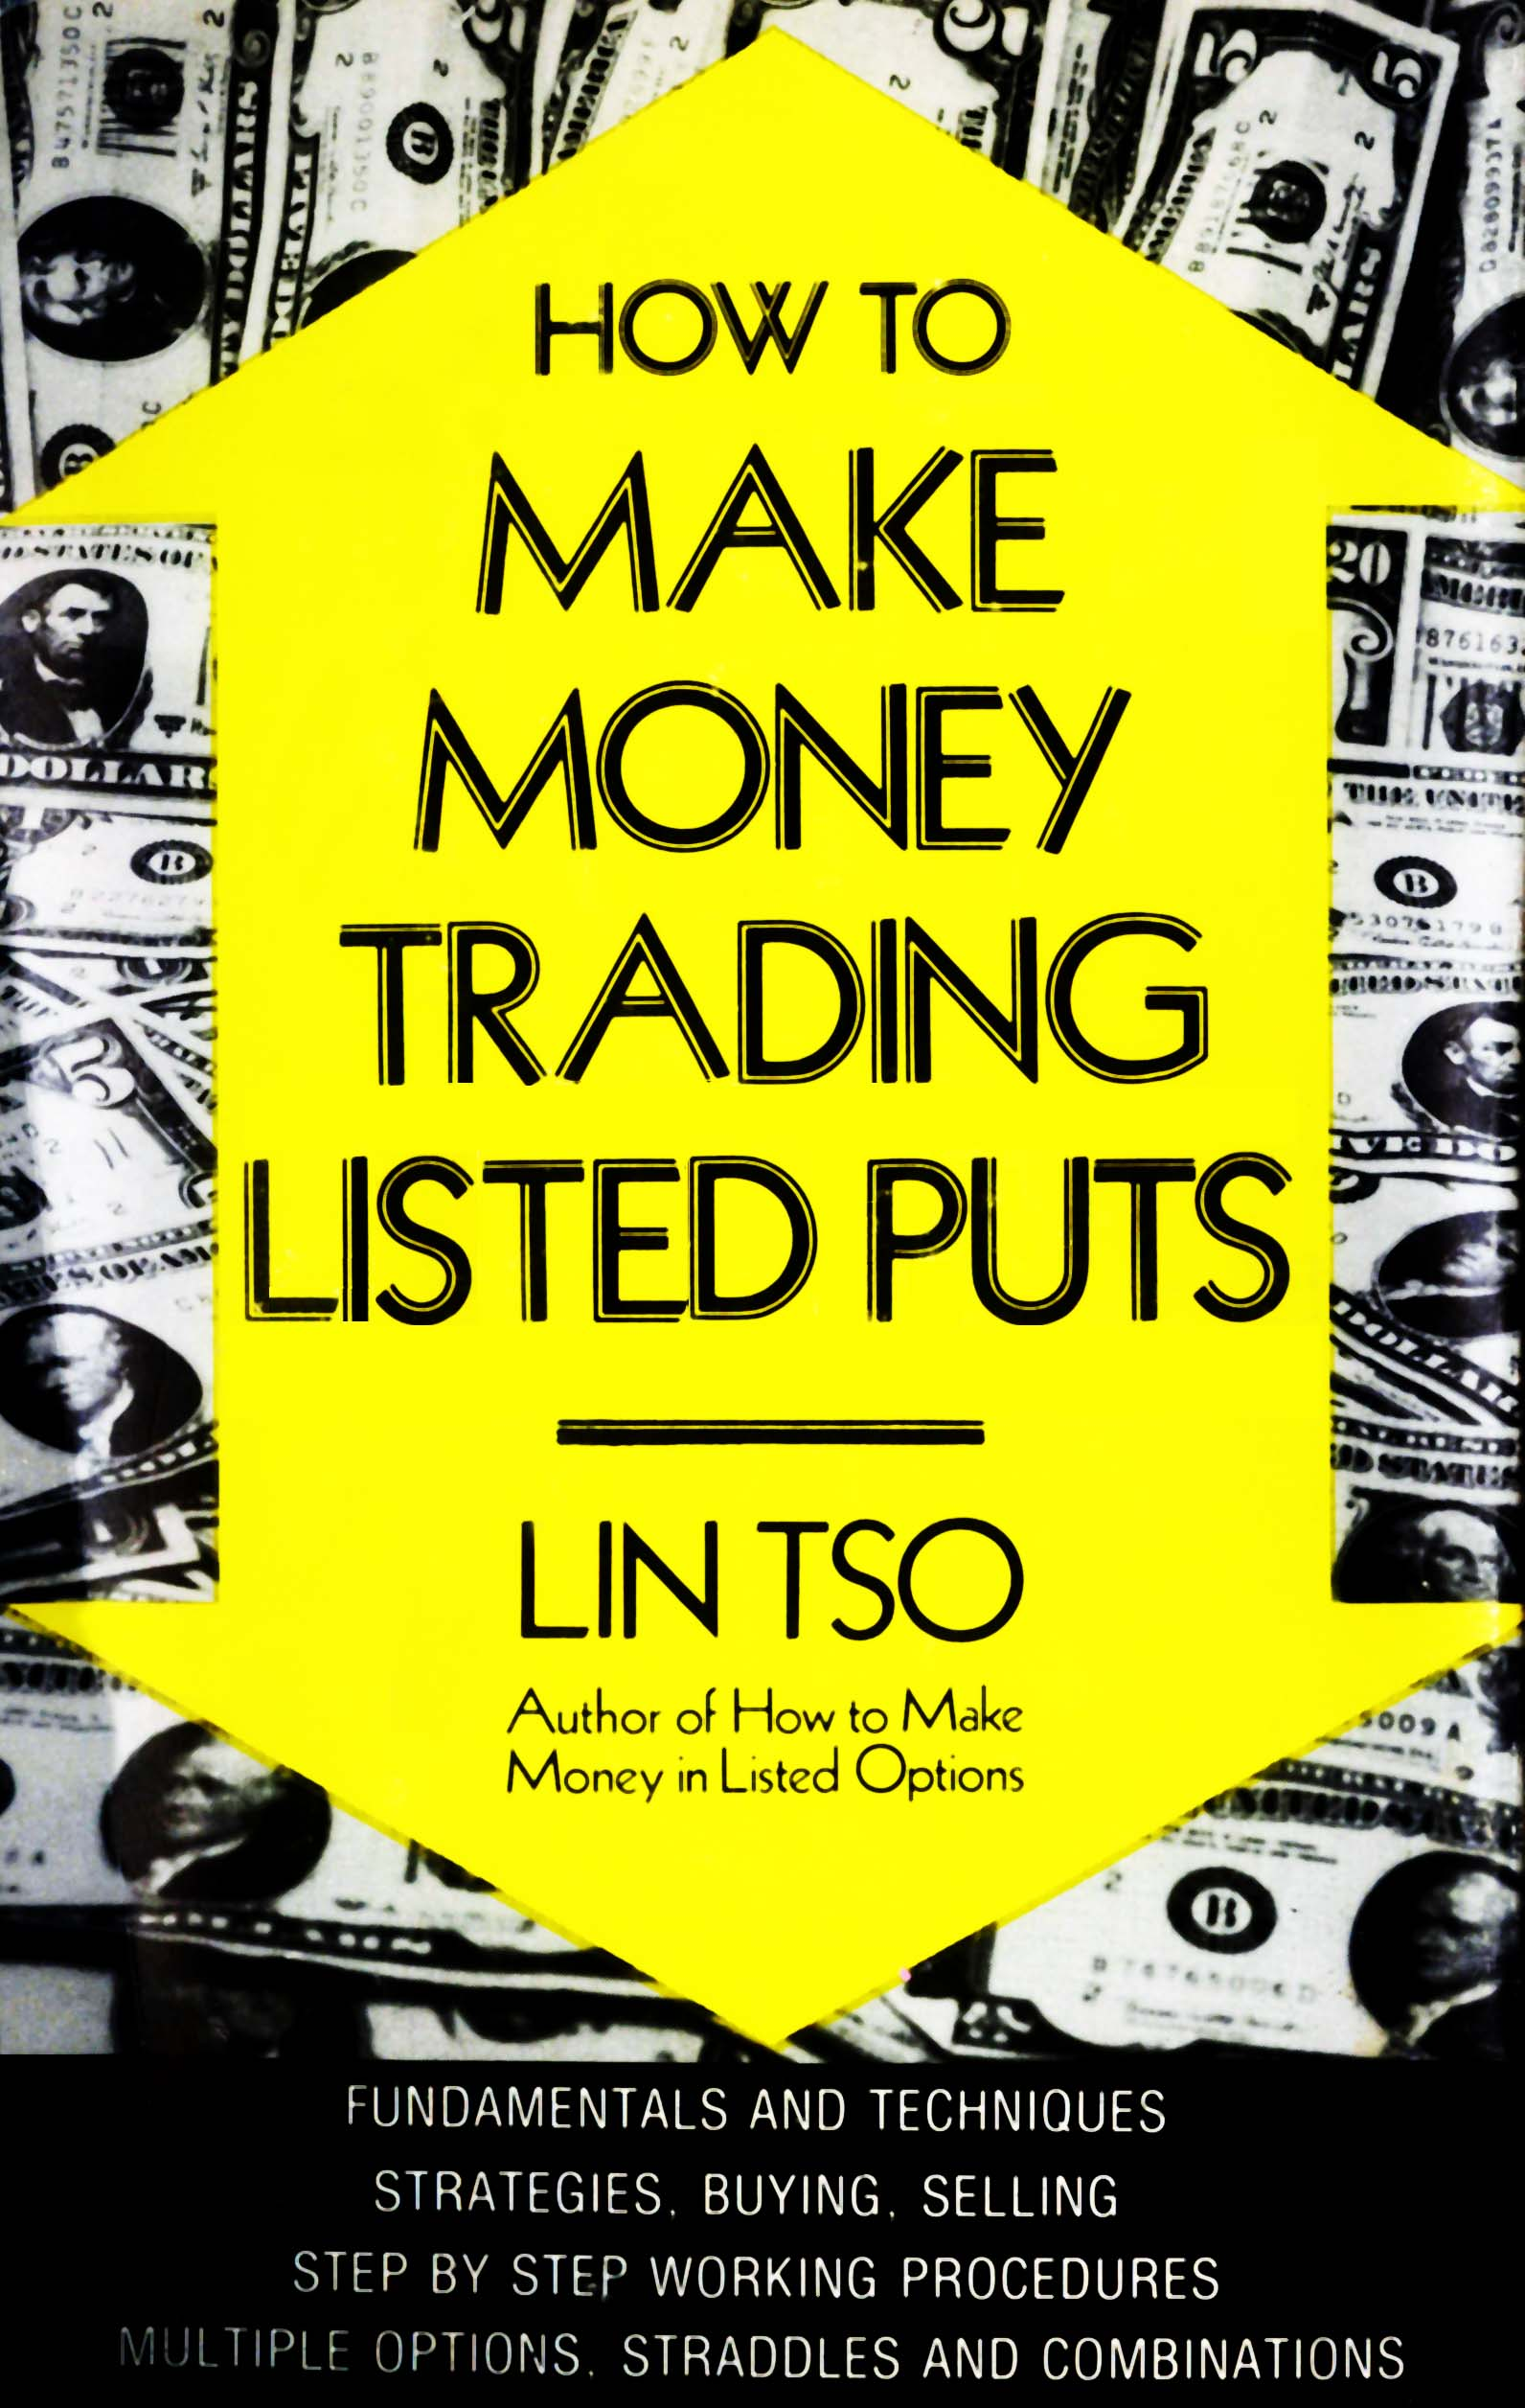 How to Make Money Trading Listed Puts